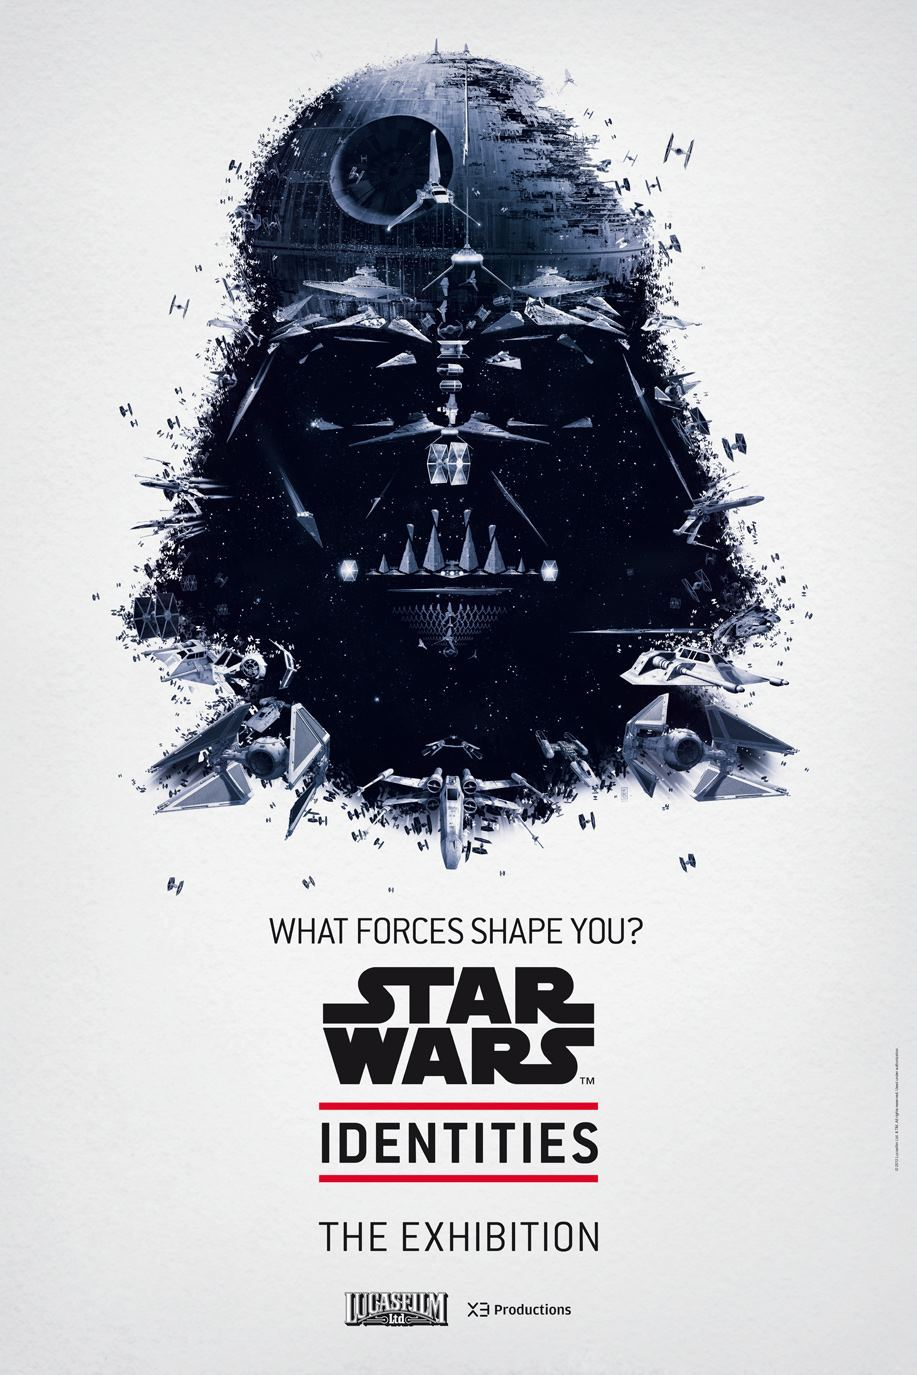 STAR WARS Identities The Exhibition Posters